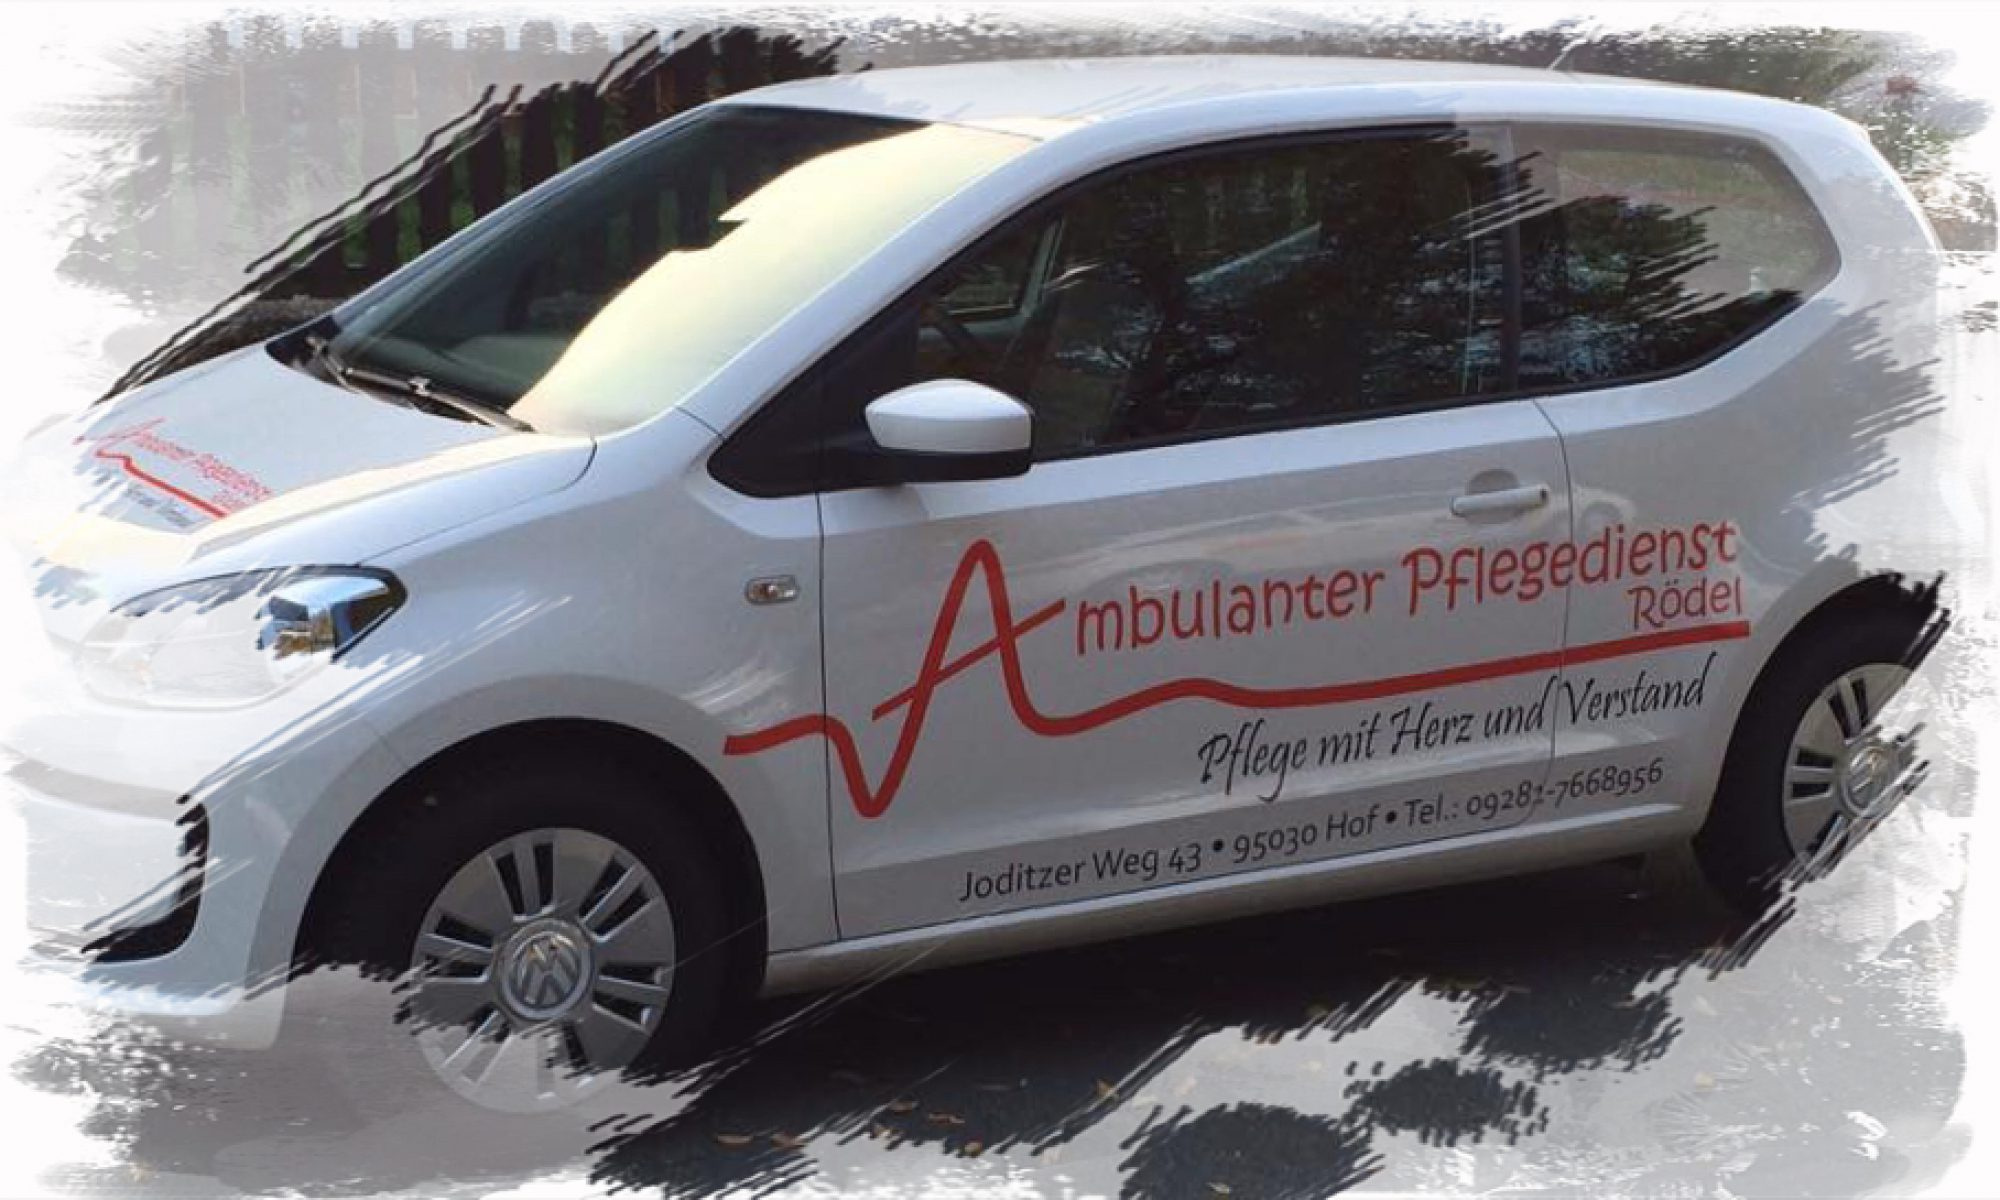 Ambulanter Pflegedienst Rödel